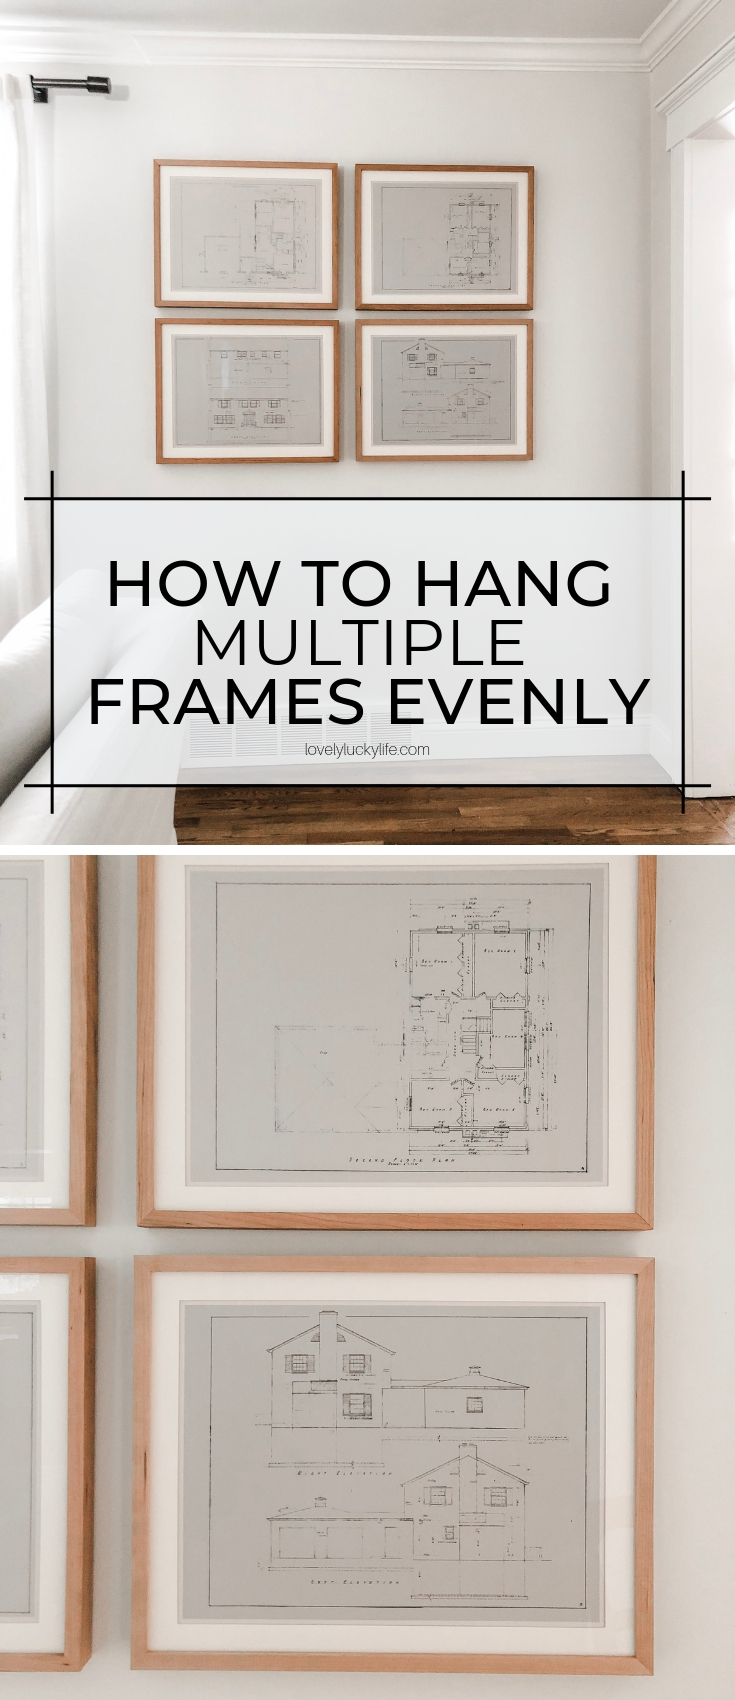 The Seriously Simple Way To Hang Multiple Pictures Evenly And Easily Lovely Lucky Life